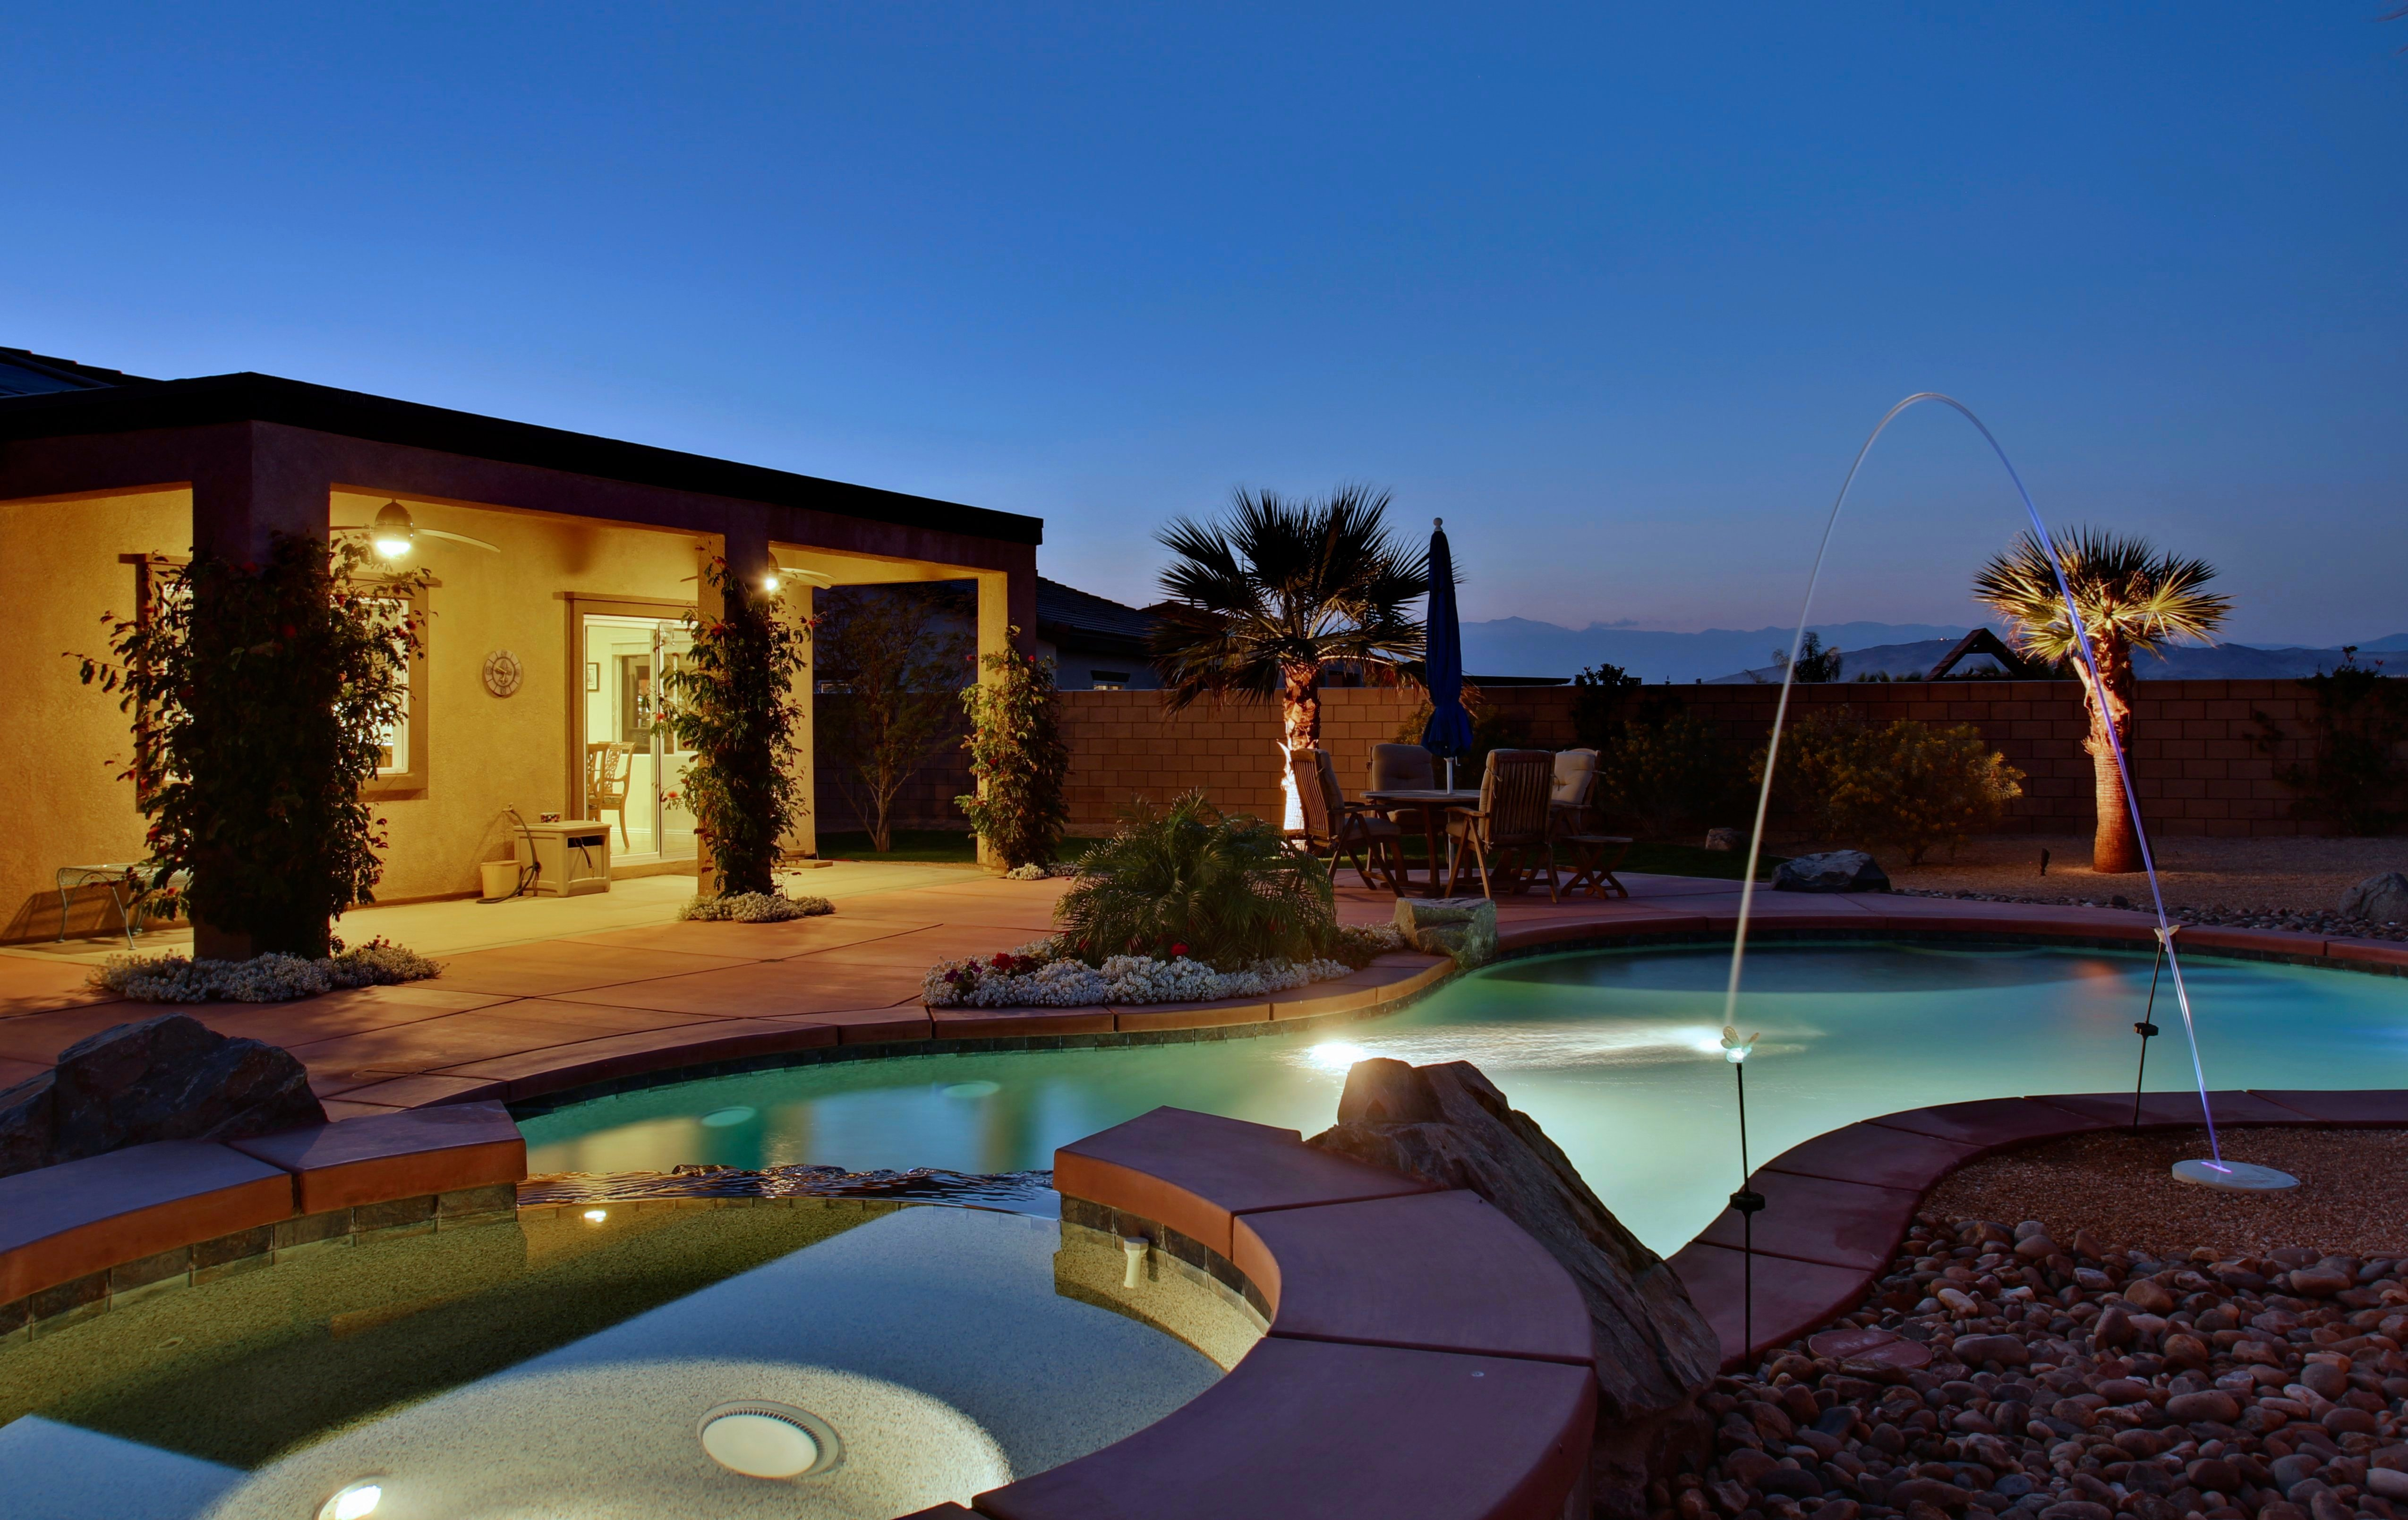 Fantastic Pool Home For Sale In Palm Desert Large Lot In